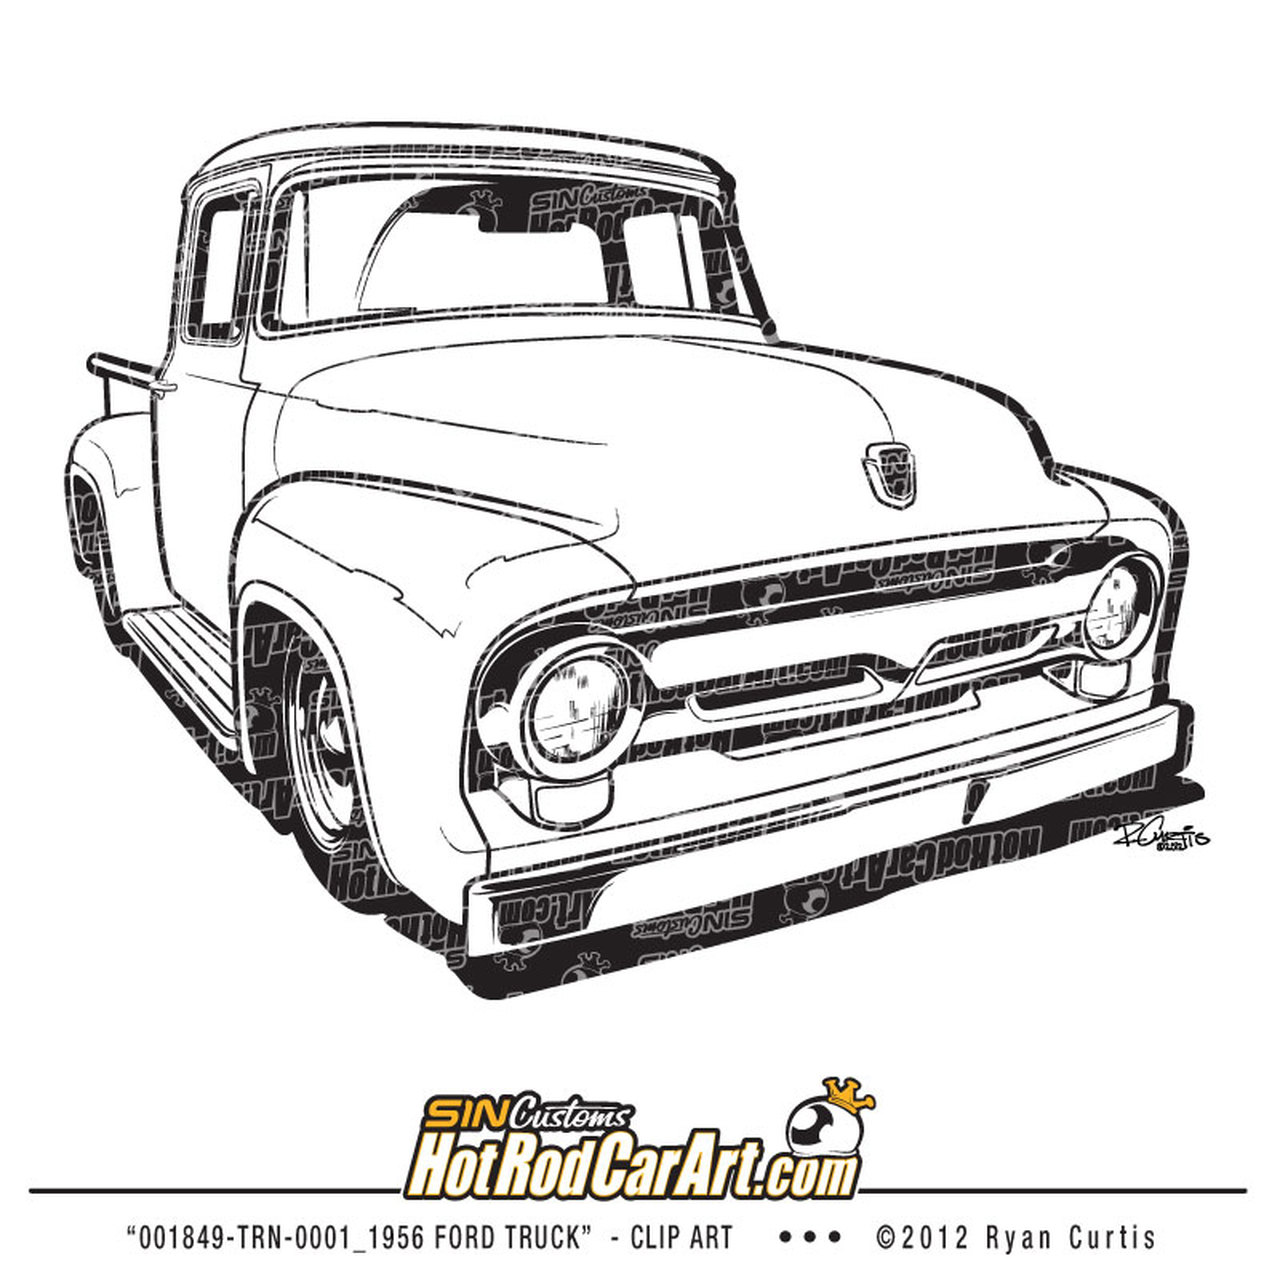 1956 Ford Truck.